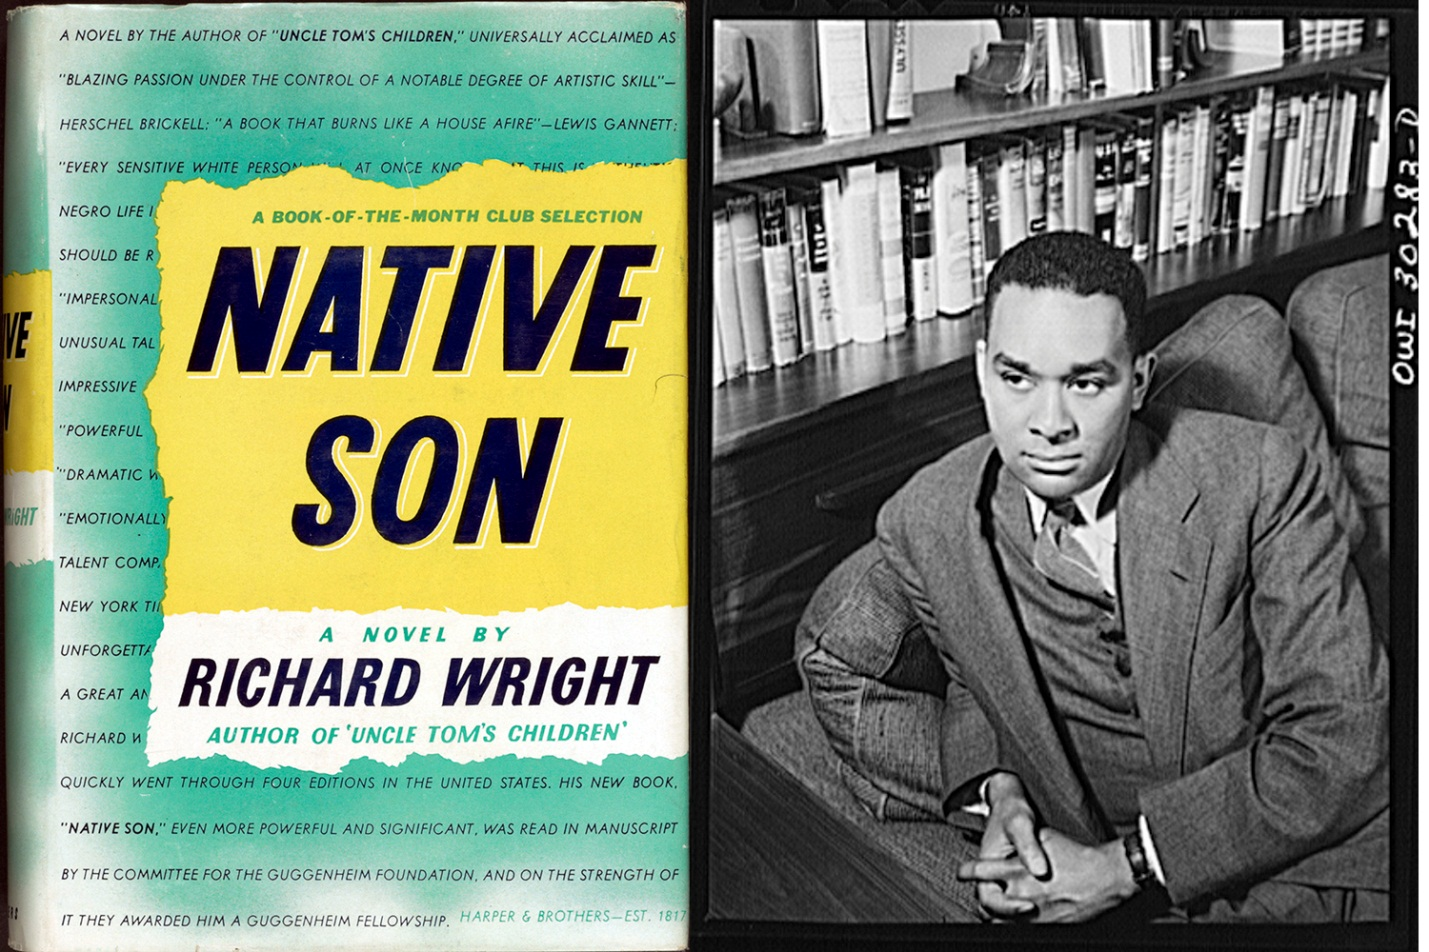 an analysis of native son a novel by richard wright